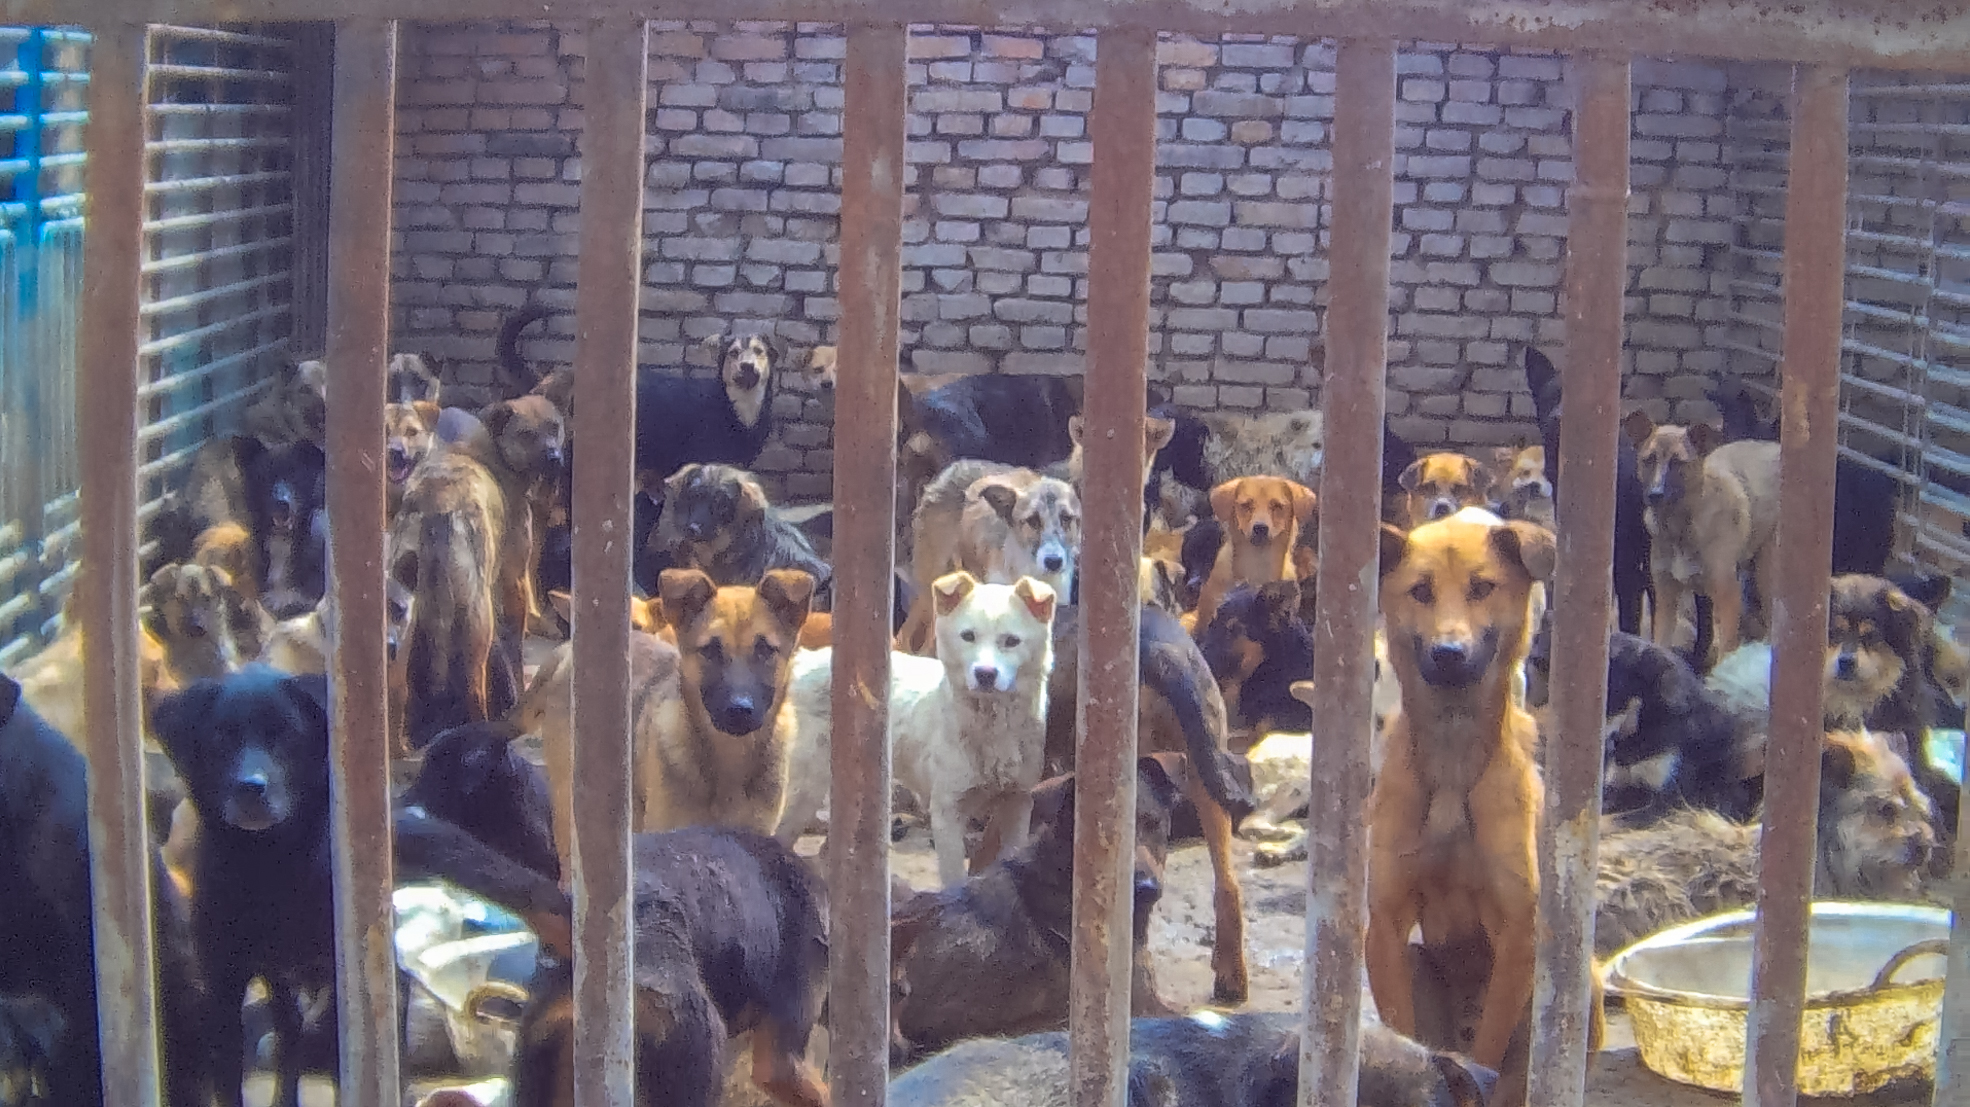 Stop Now to Stop Dog Meat - photo#10